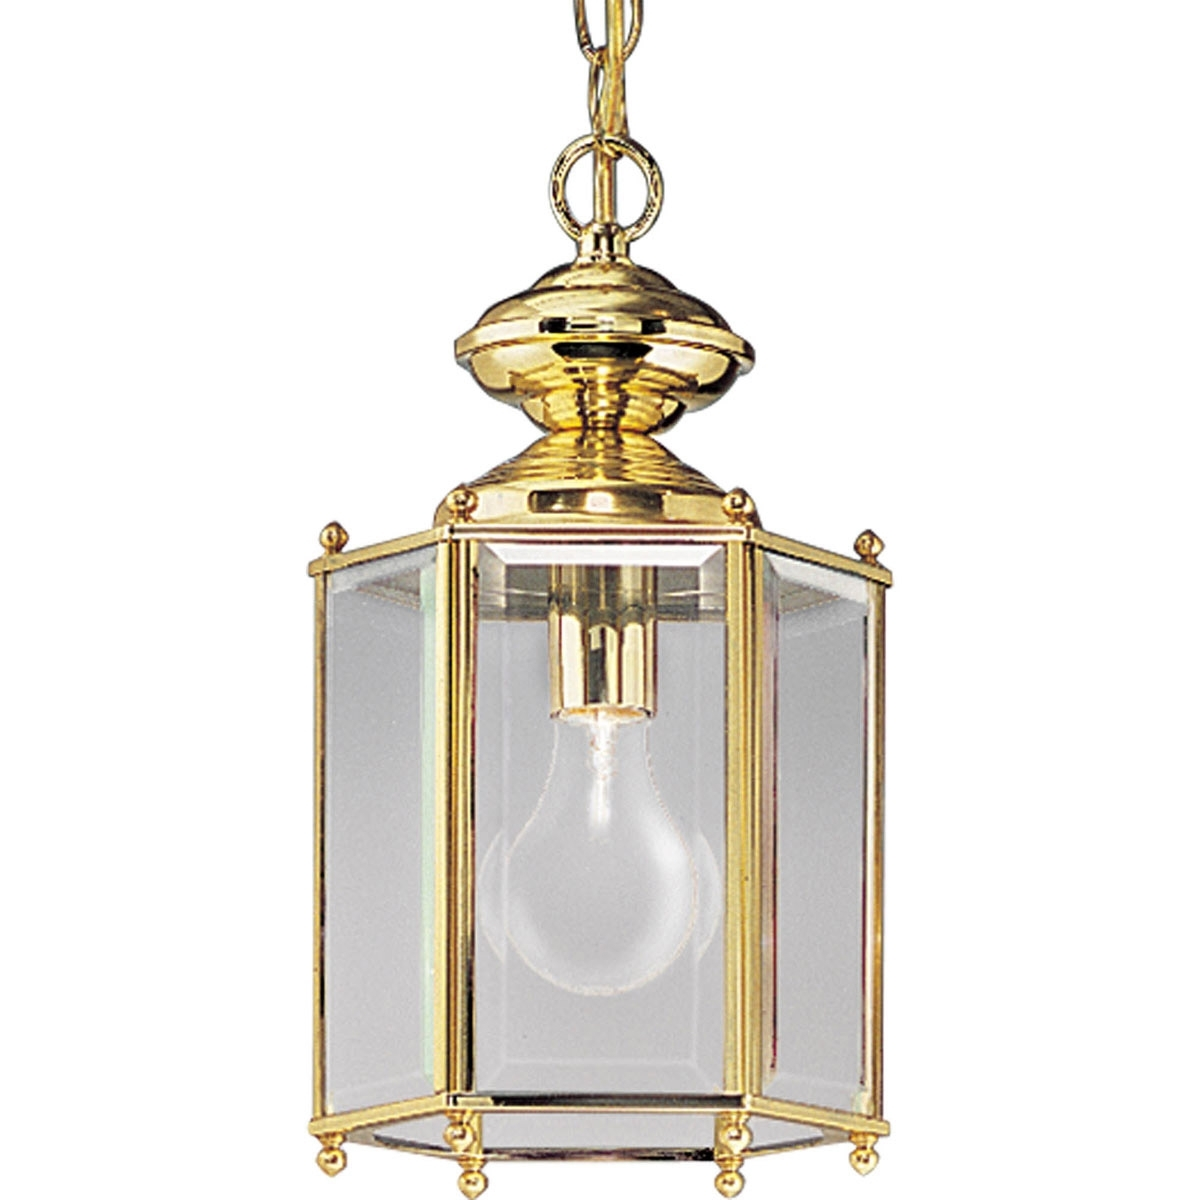 Polished Brass Outdoor Ceiling Lights With Regard To Recent Progress Lighting P5834 10 Beveled Glass Outdoor Ceiling Lights (View 13 of 20)